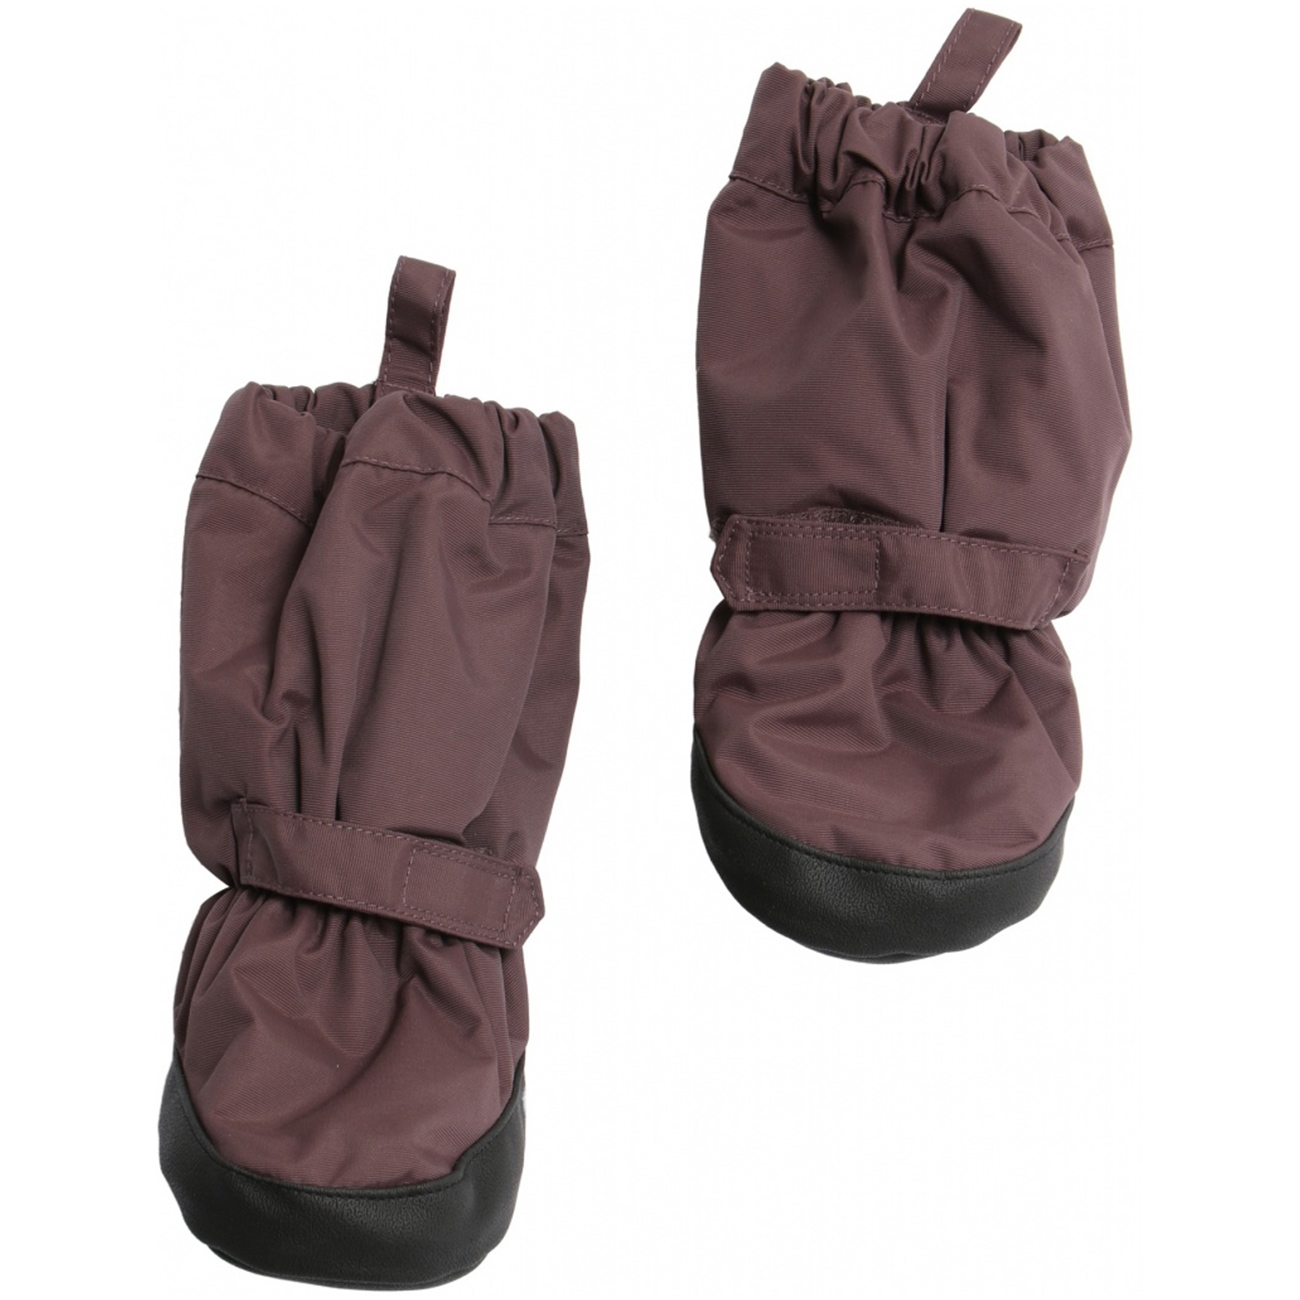 Wheat Outerwear Booties Eggplant